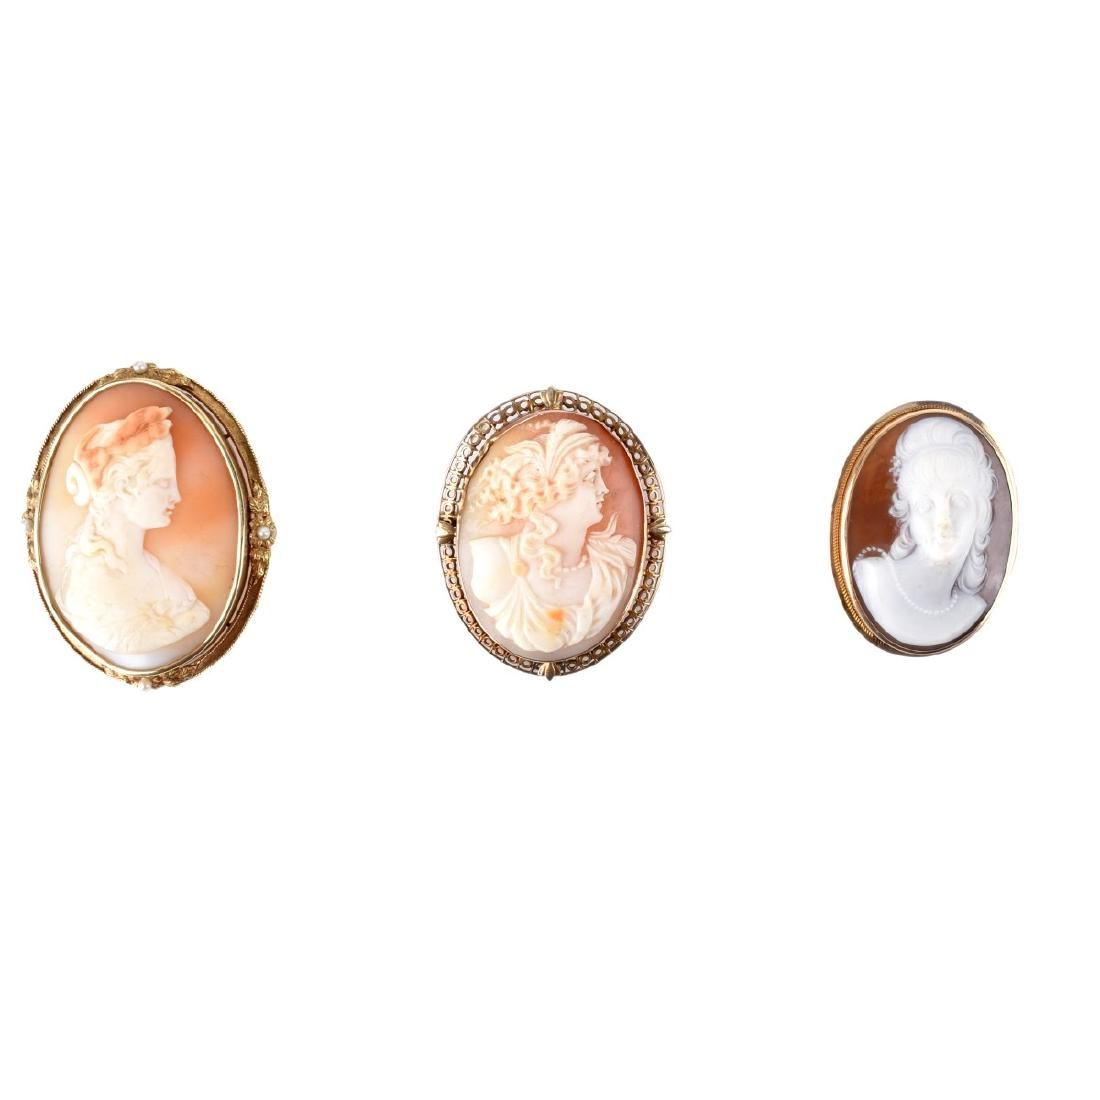 Three Antique Cameo Brooches